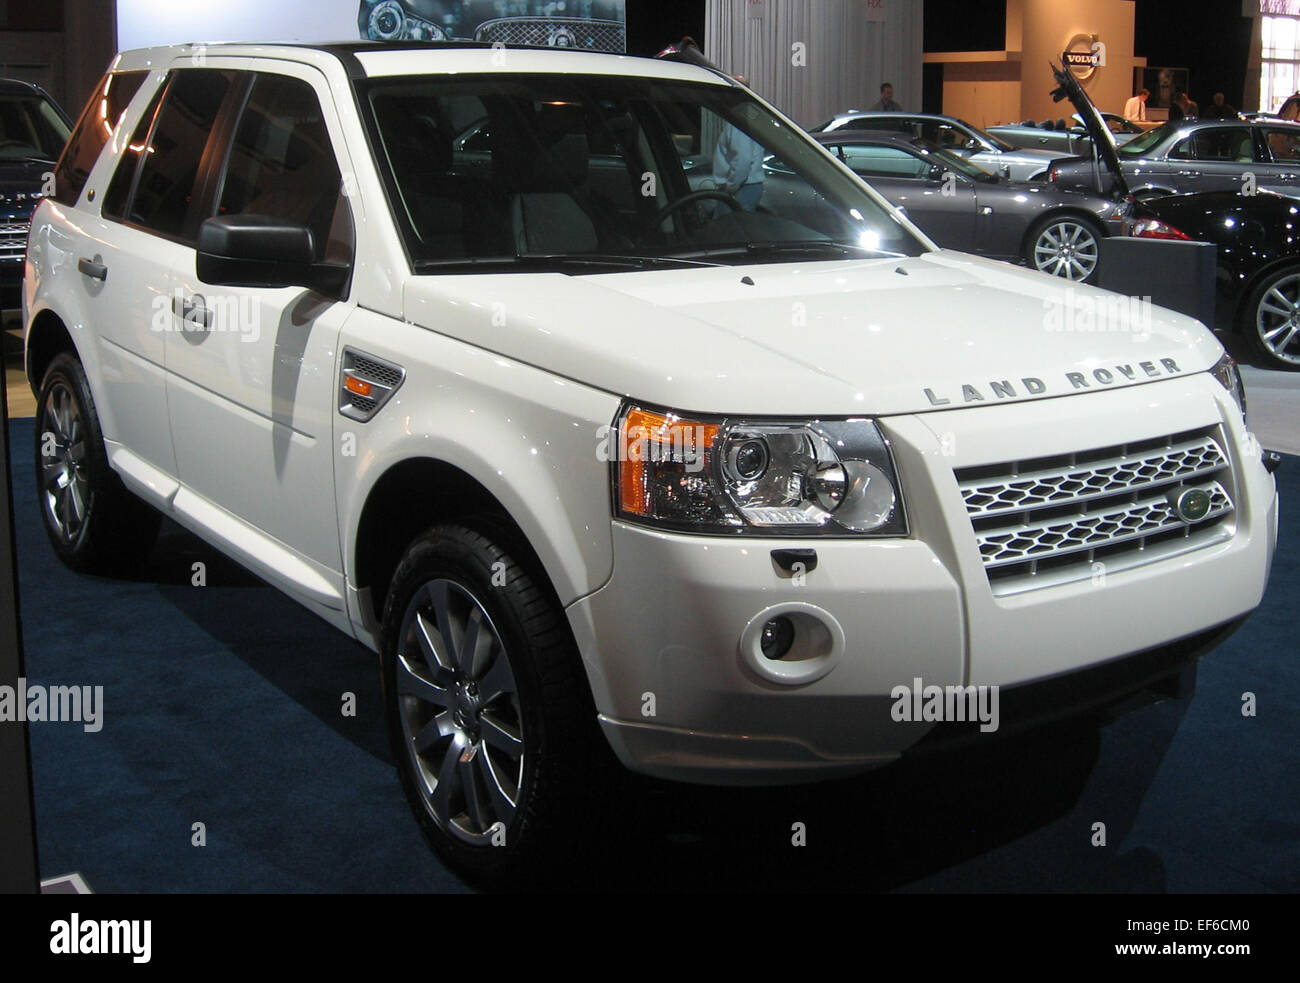 landrover qatar hse vehicles for land urgent rover title sale living